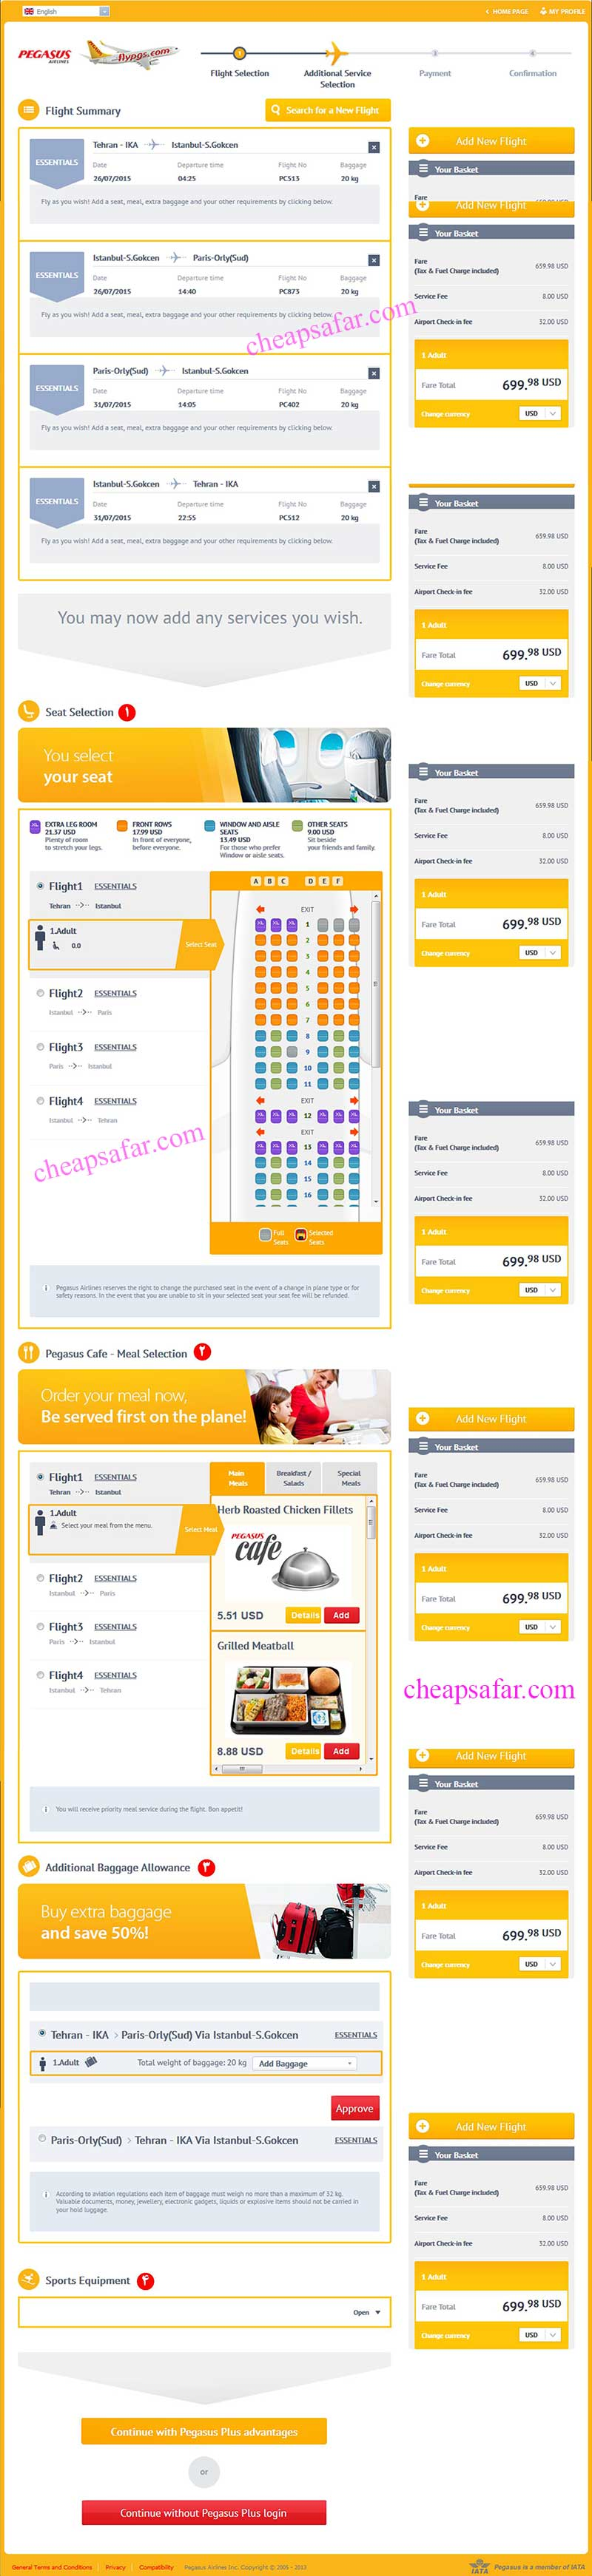 buy-tickets-Pegasus-Airlines-6